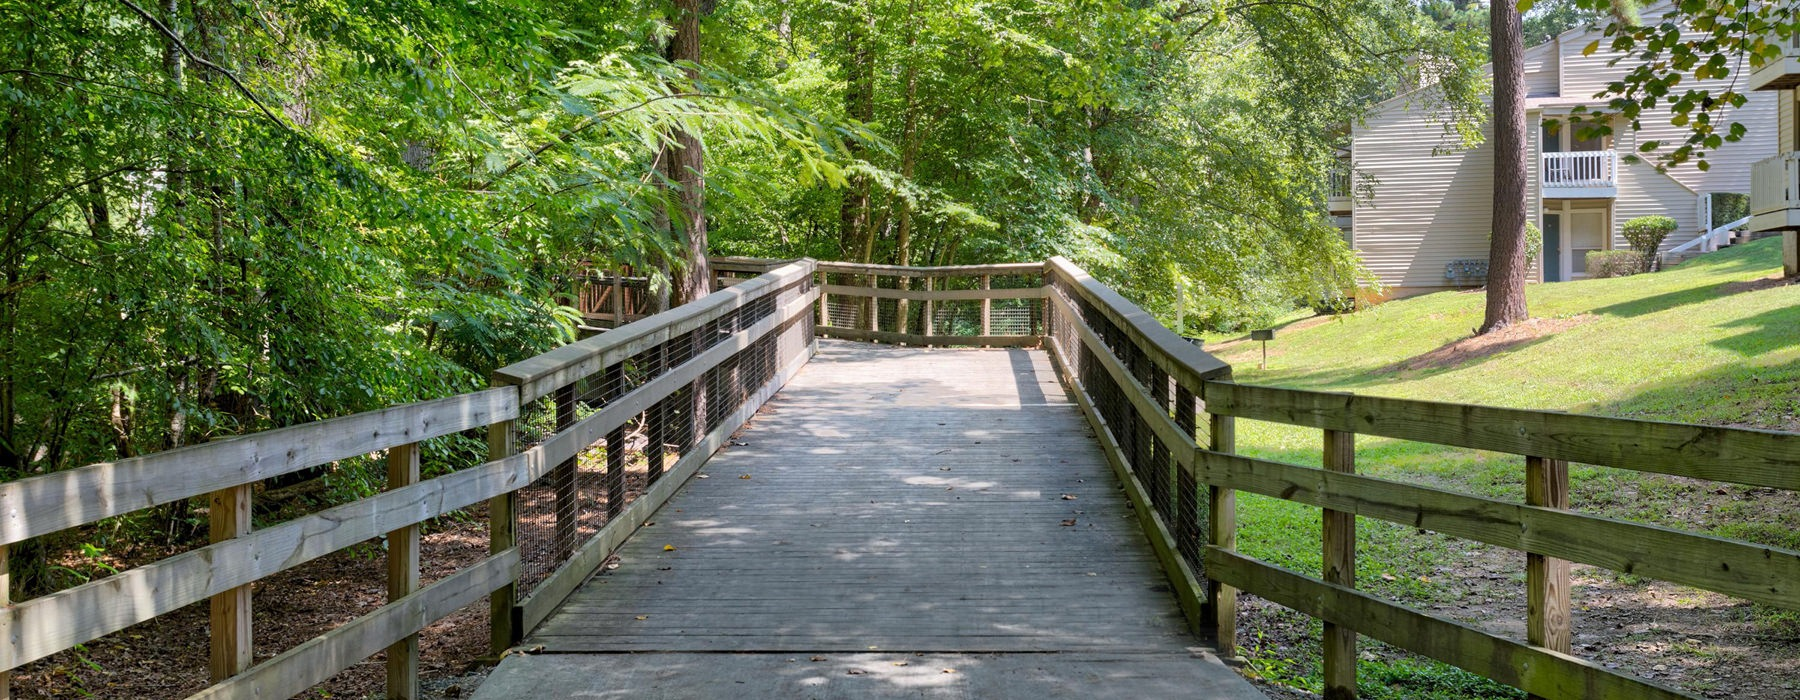 wooden bridge through forested walking trail adjacent to Bryn Athen at Six Forks